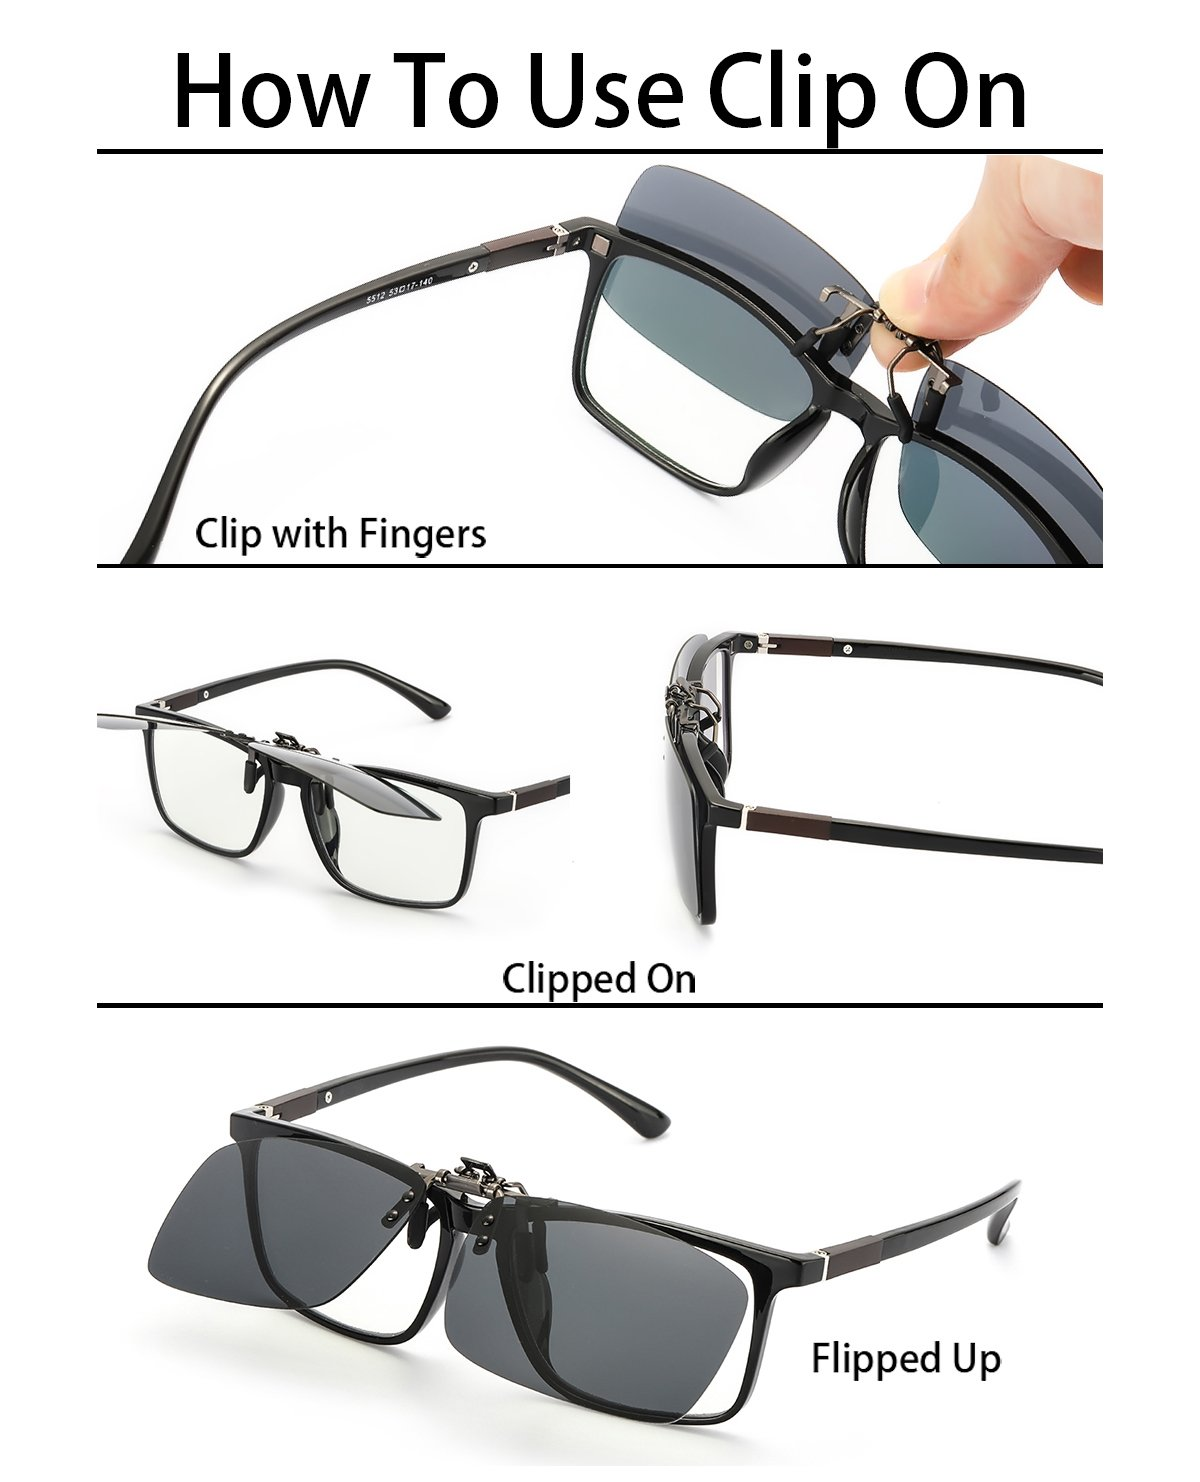 Clip on Sunglasses for Prescription Glasses, Flip up Rimless Anti Glare Night Vision lens for Driving Fishing, 2 PACK (grey polarized lens+yellow night lens, 5941) by ELIVWR (Image #2)